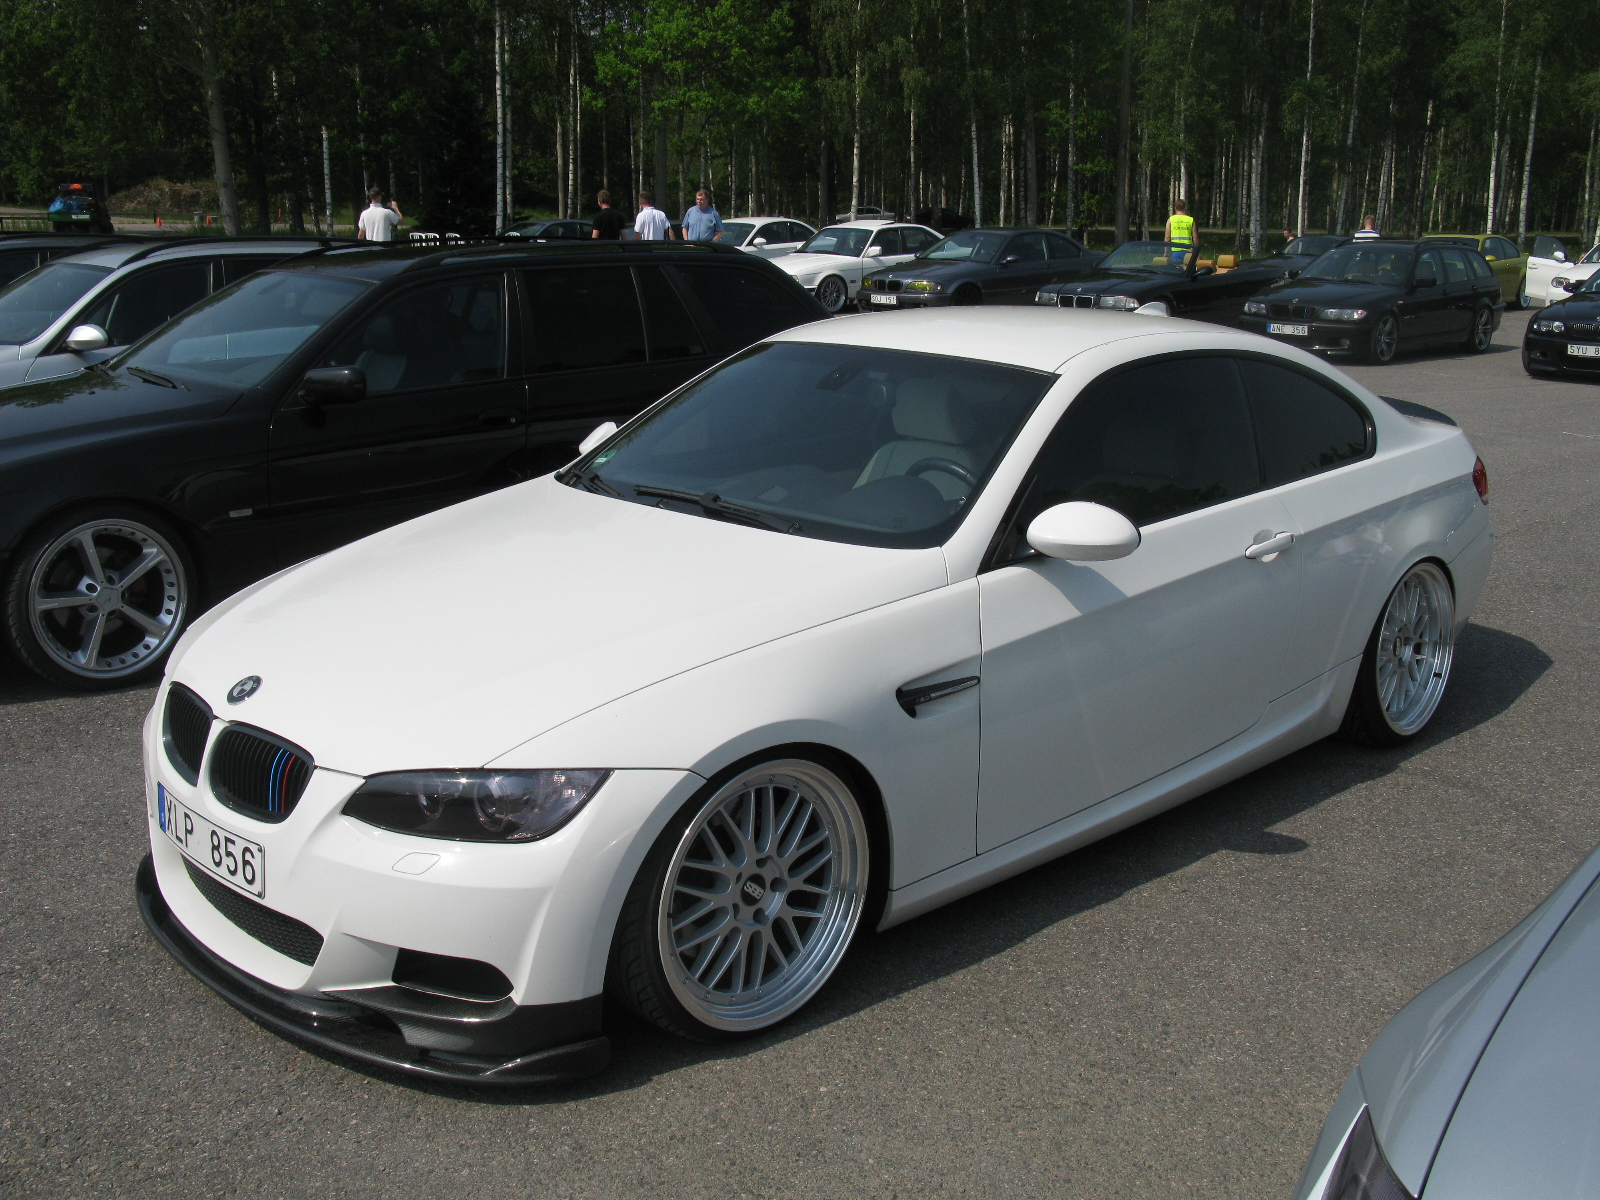 file bmw 335d coup m sport e92 14167170529 jpg wikimedia commons. Black Bedroom Furniture Sets. Home Design Ideas